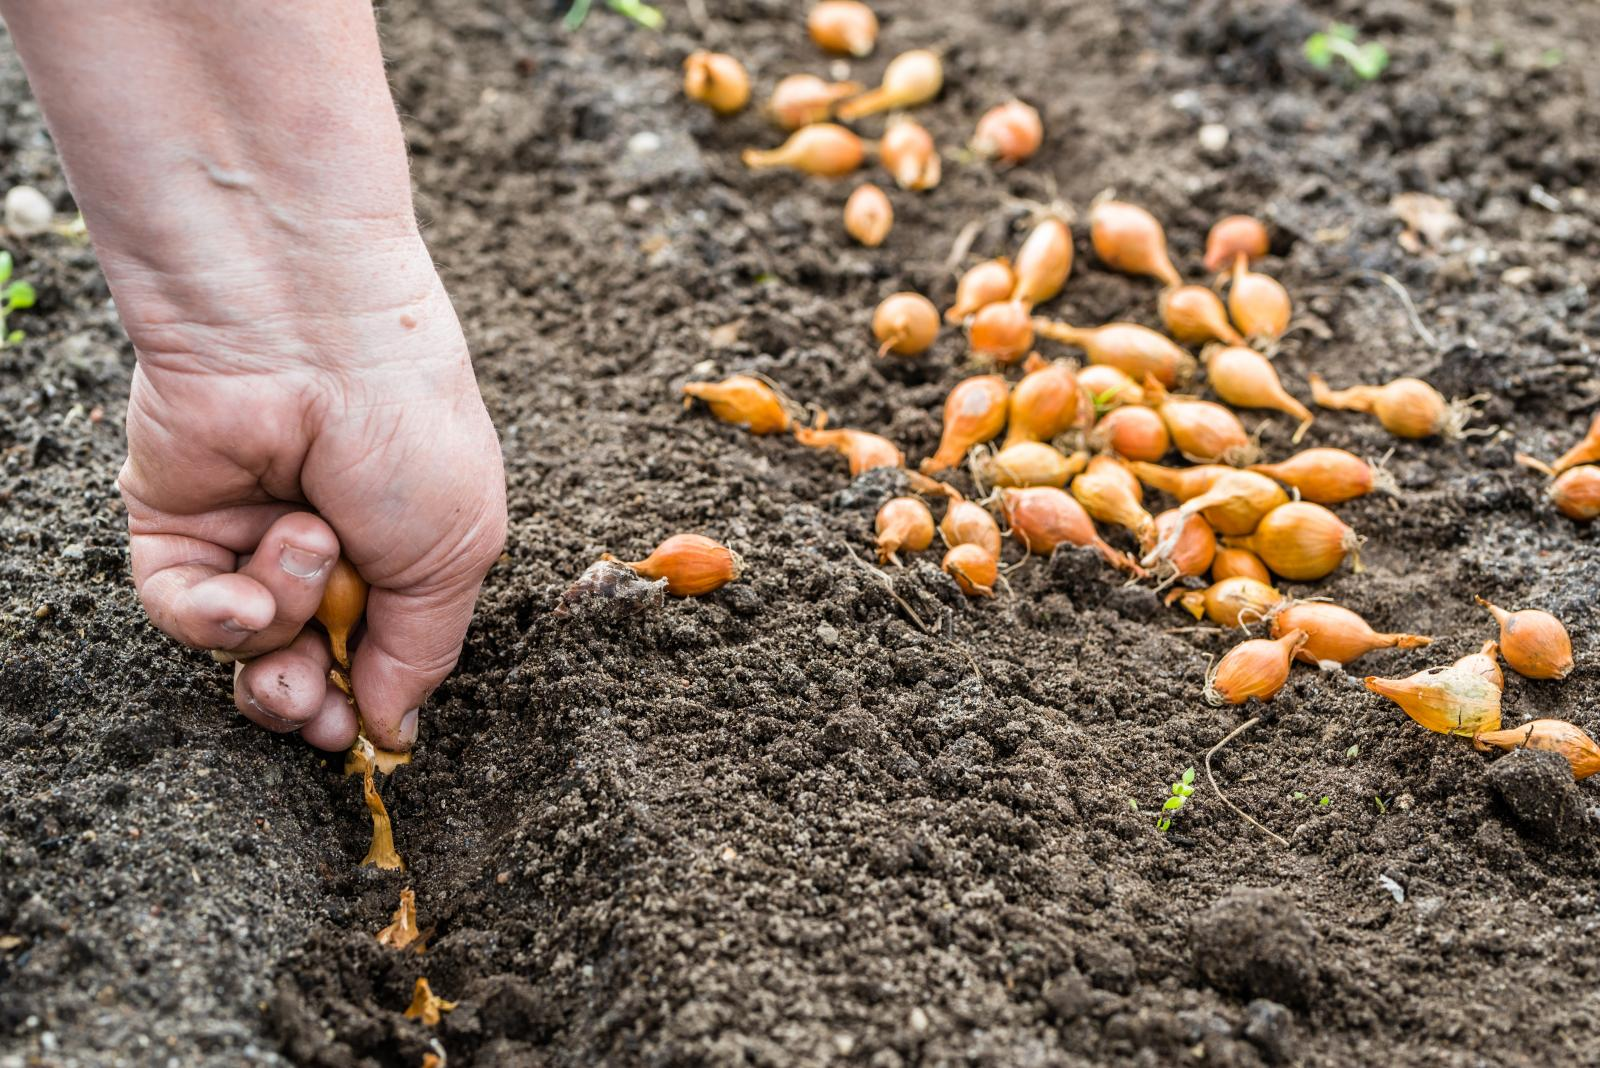 Sowing onions outside